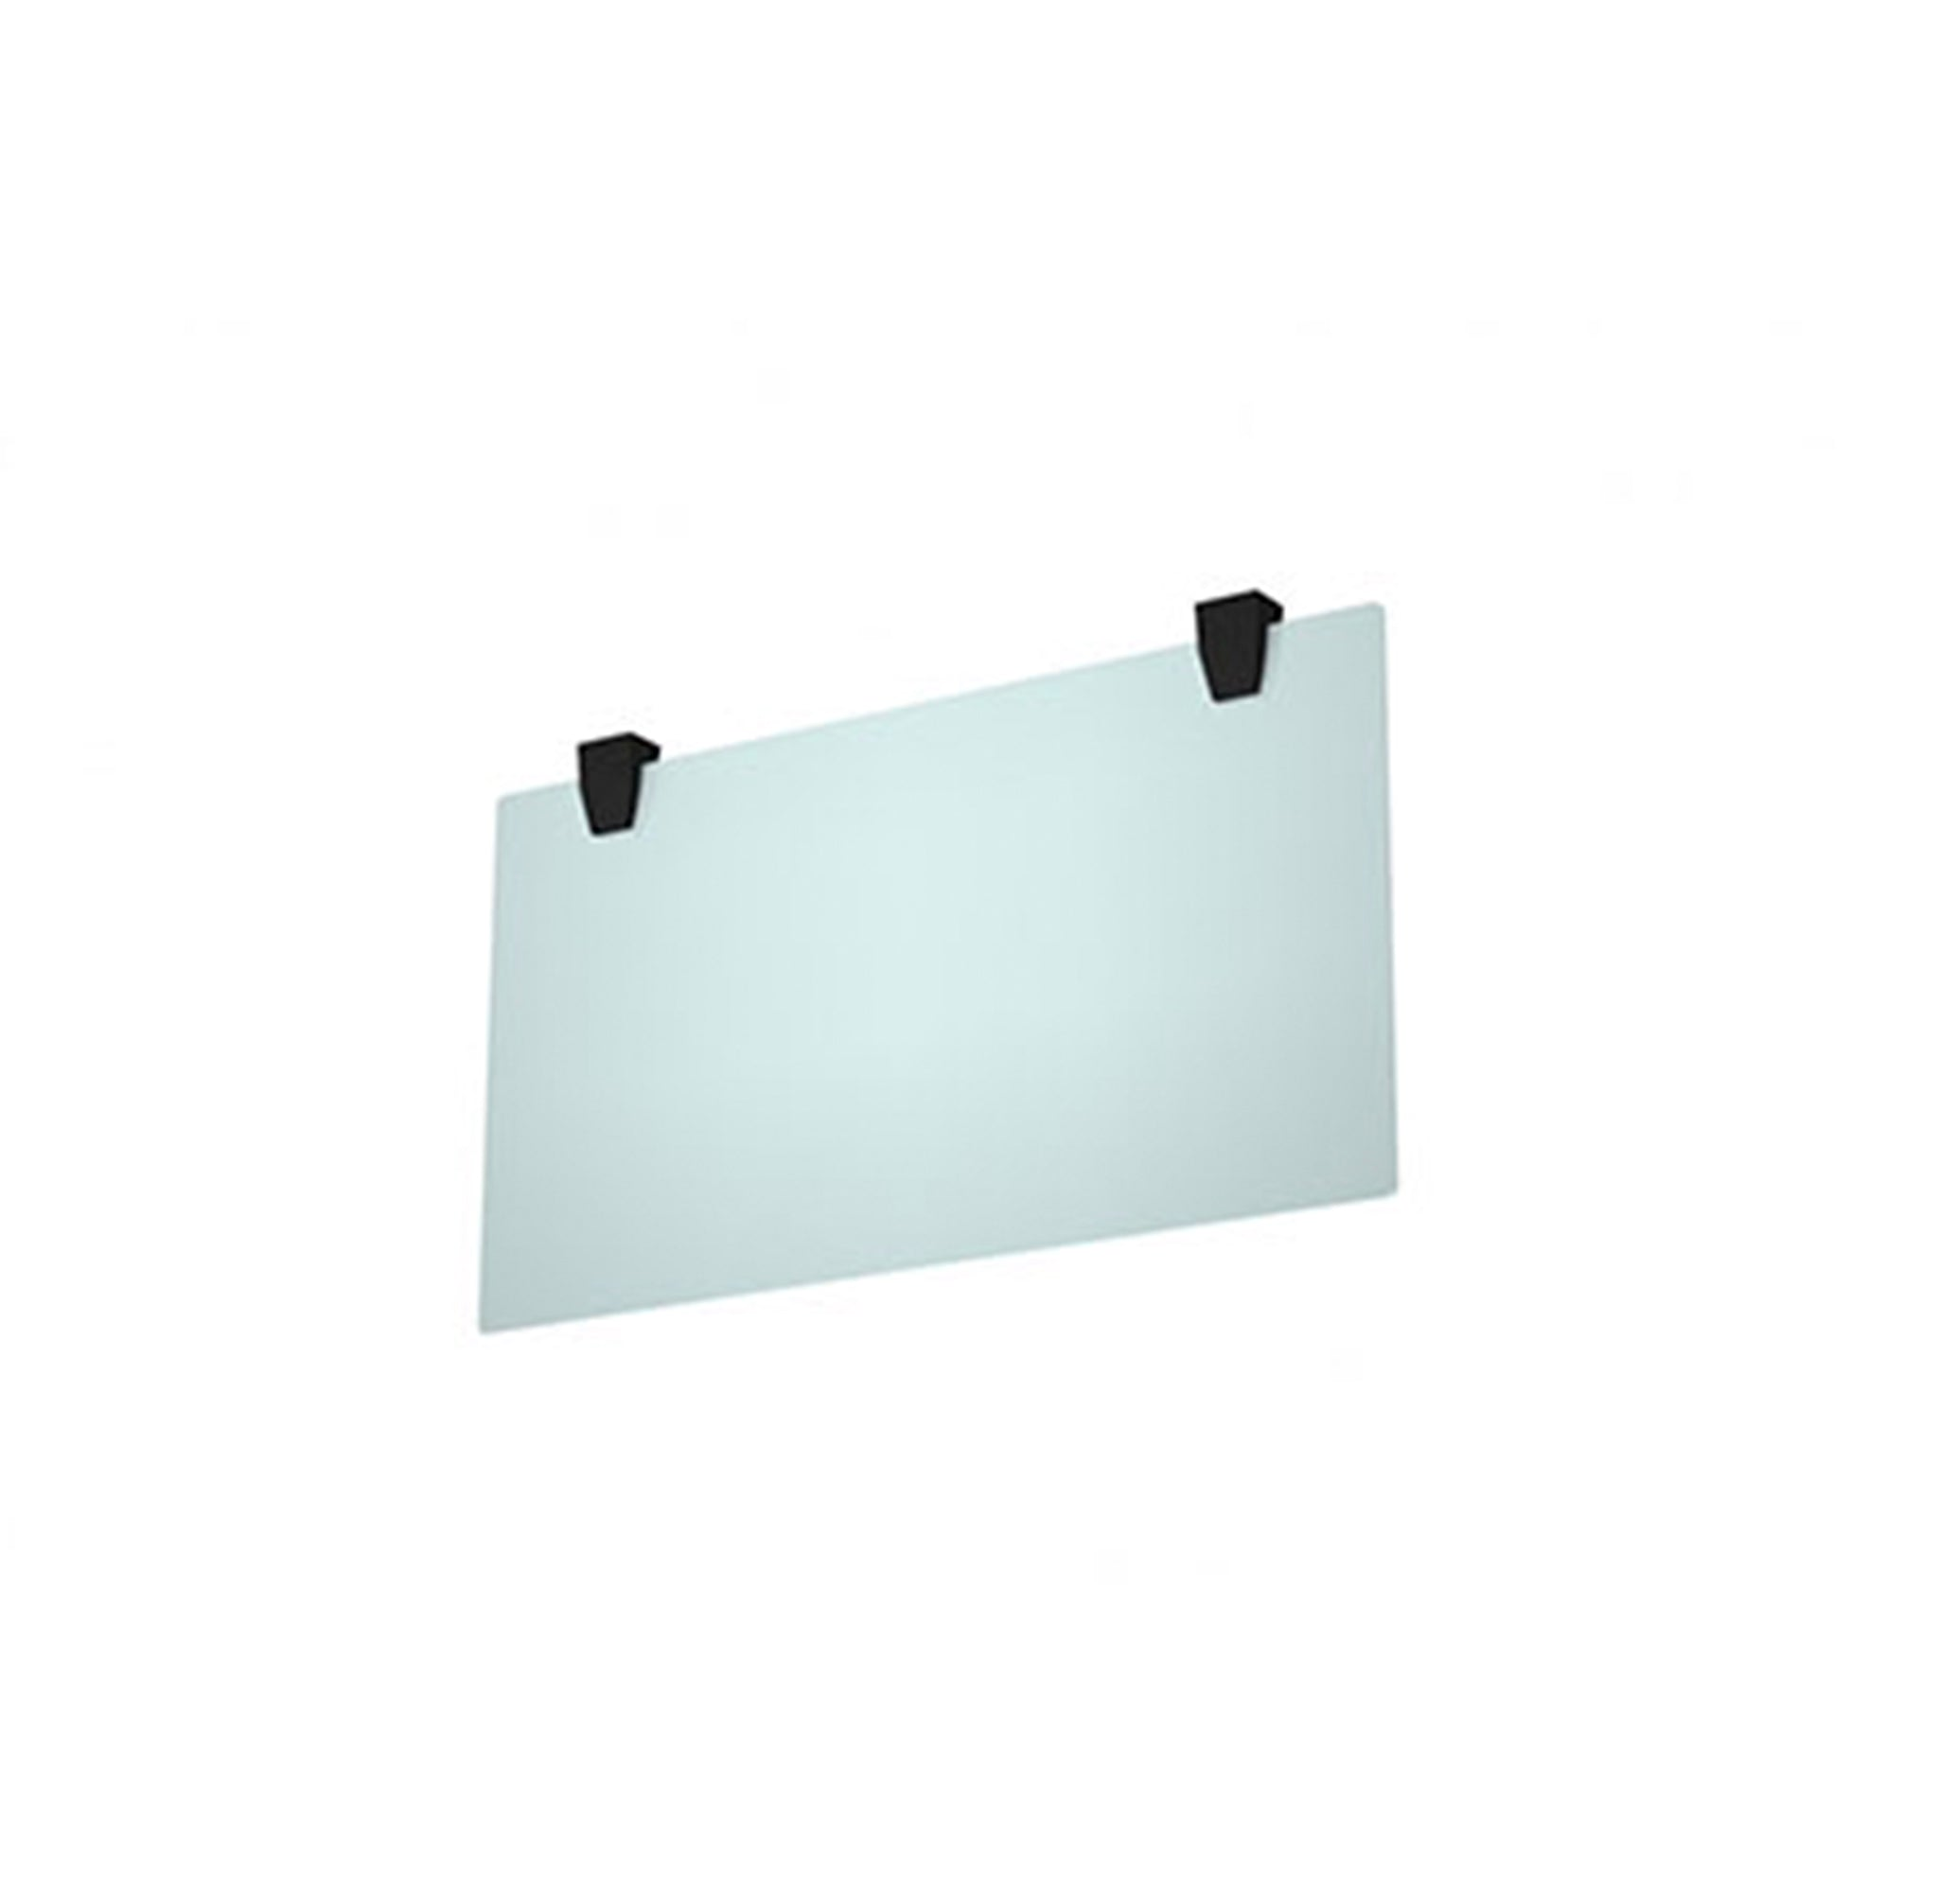 Plexiglass Hanging Modesty Panel